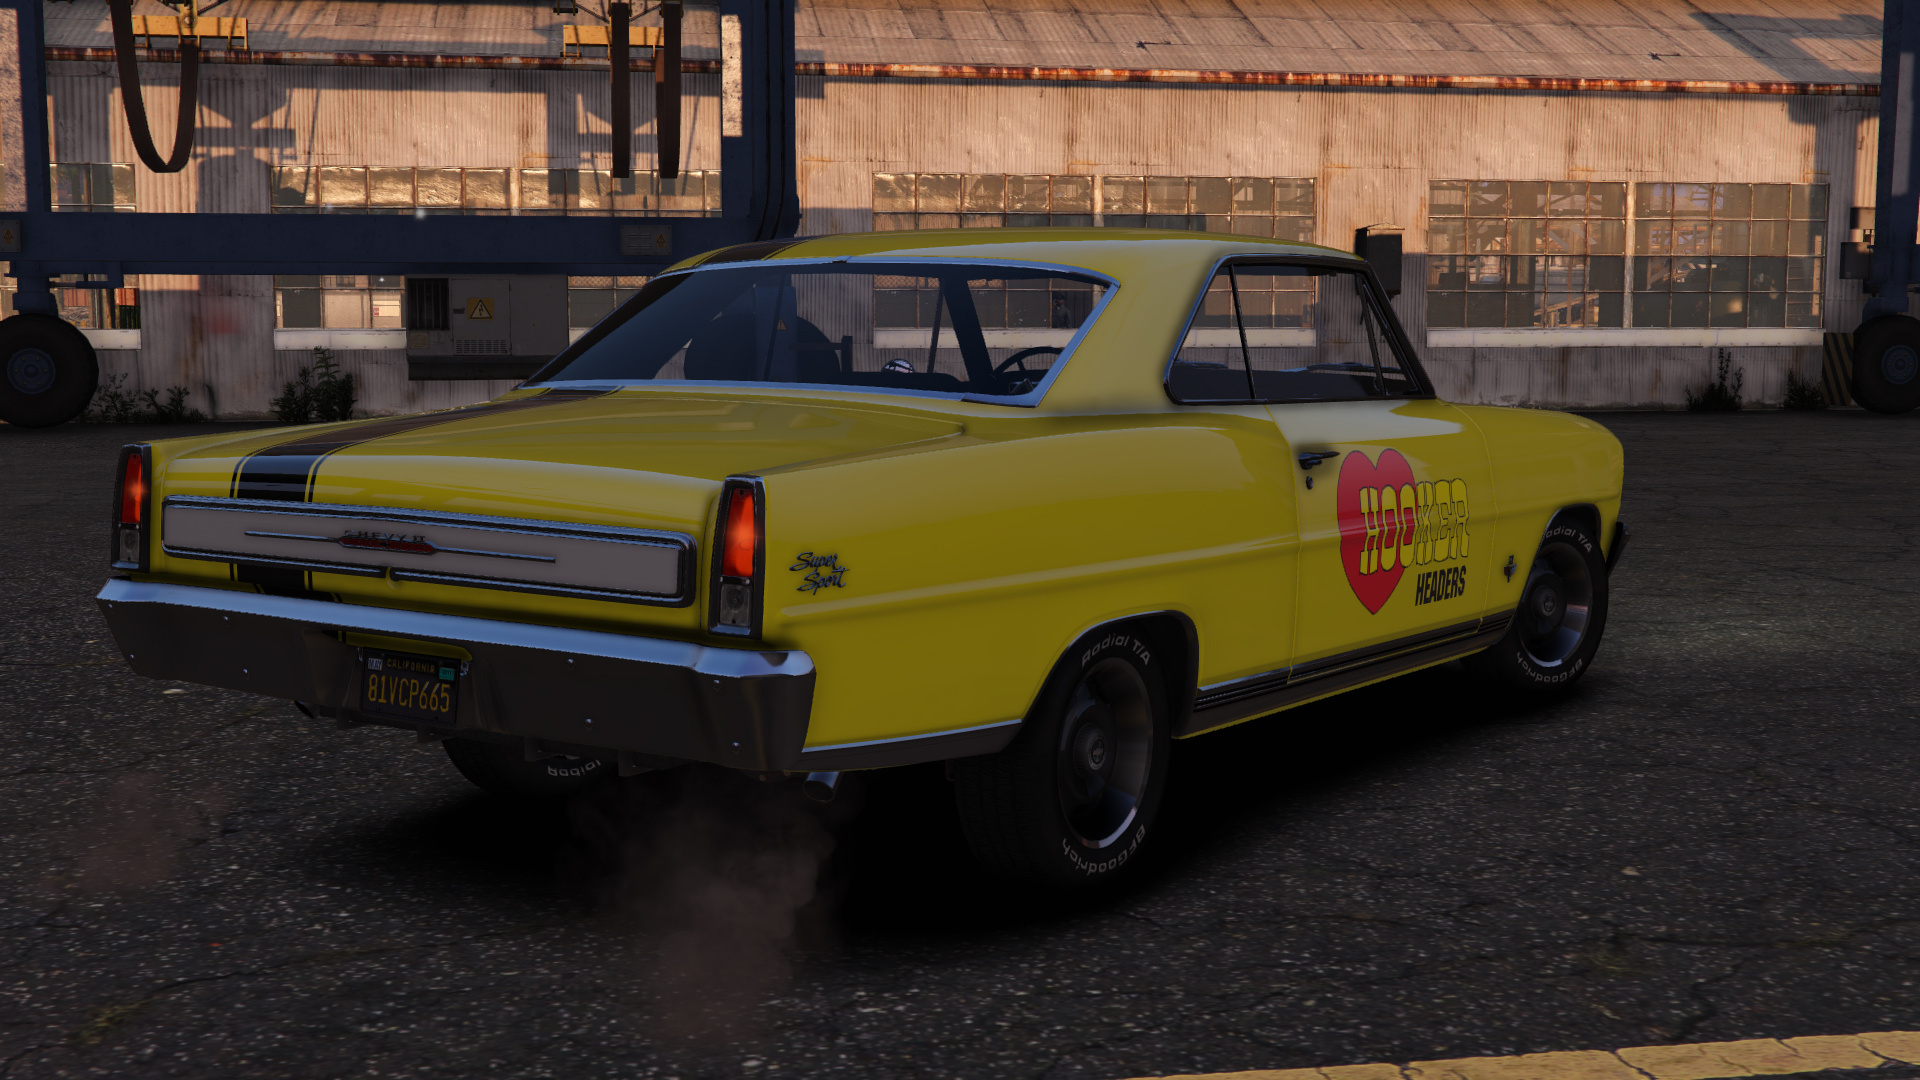 1966 Chevrolet Chevy Ii Nova Ss Gta5 Modscom B2f18f Grand Theft Auto V Screenshot 20180122 18374275 39840468981 O